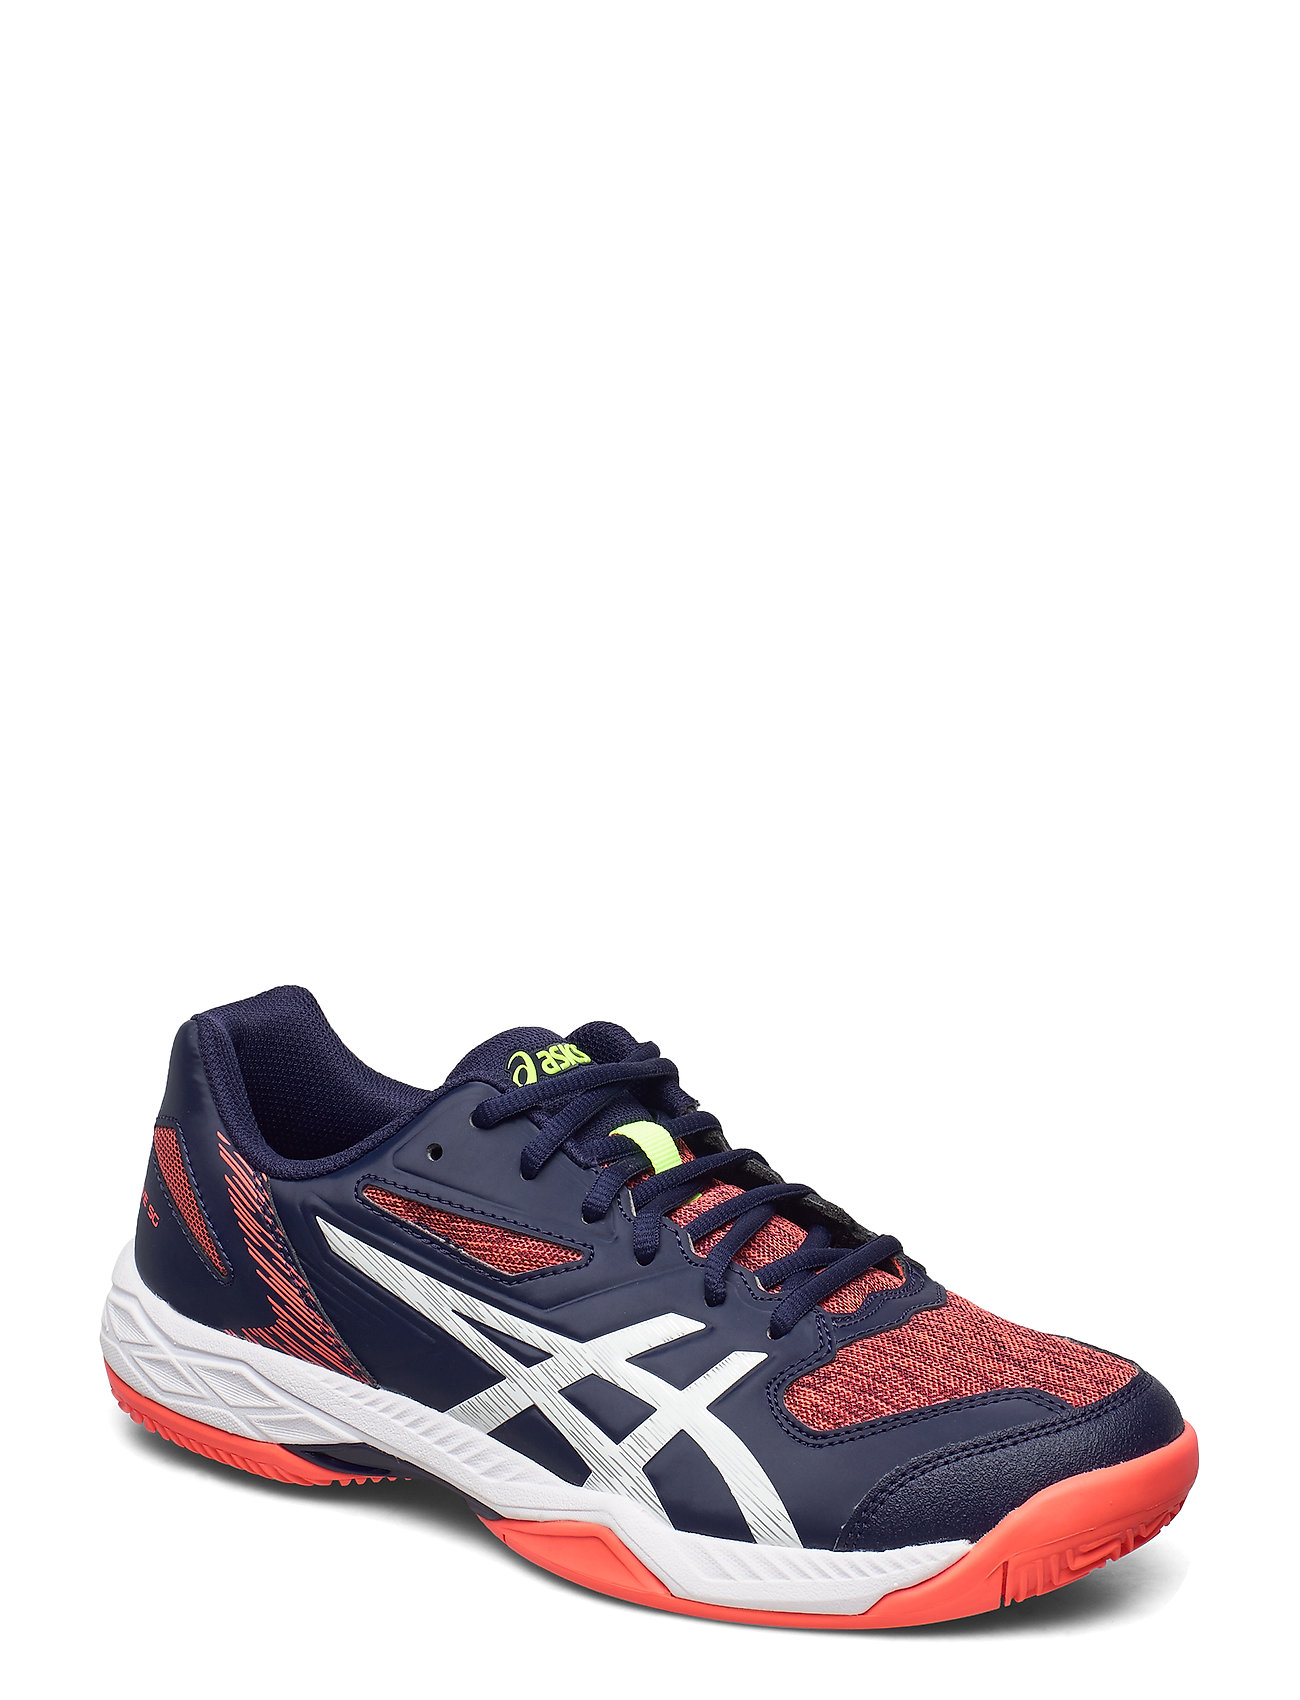 ASICS Sneaker | Gel-Padel Exclusive 5 Sg Shoes Sport Shoes Training Shoes- Golf/tennis/fitness Blau ASICS